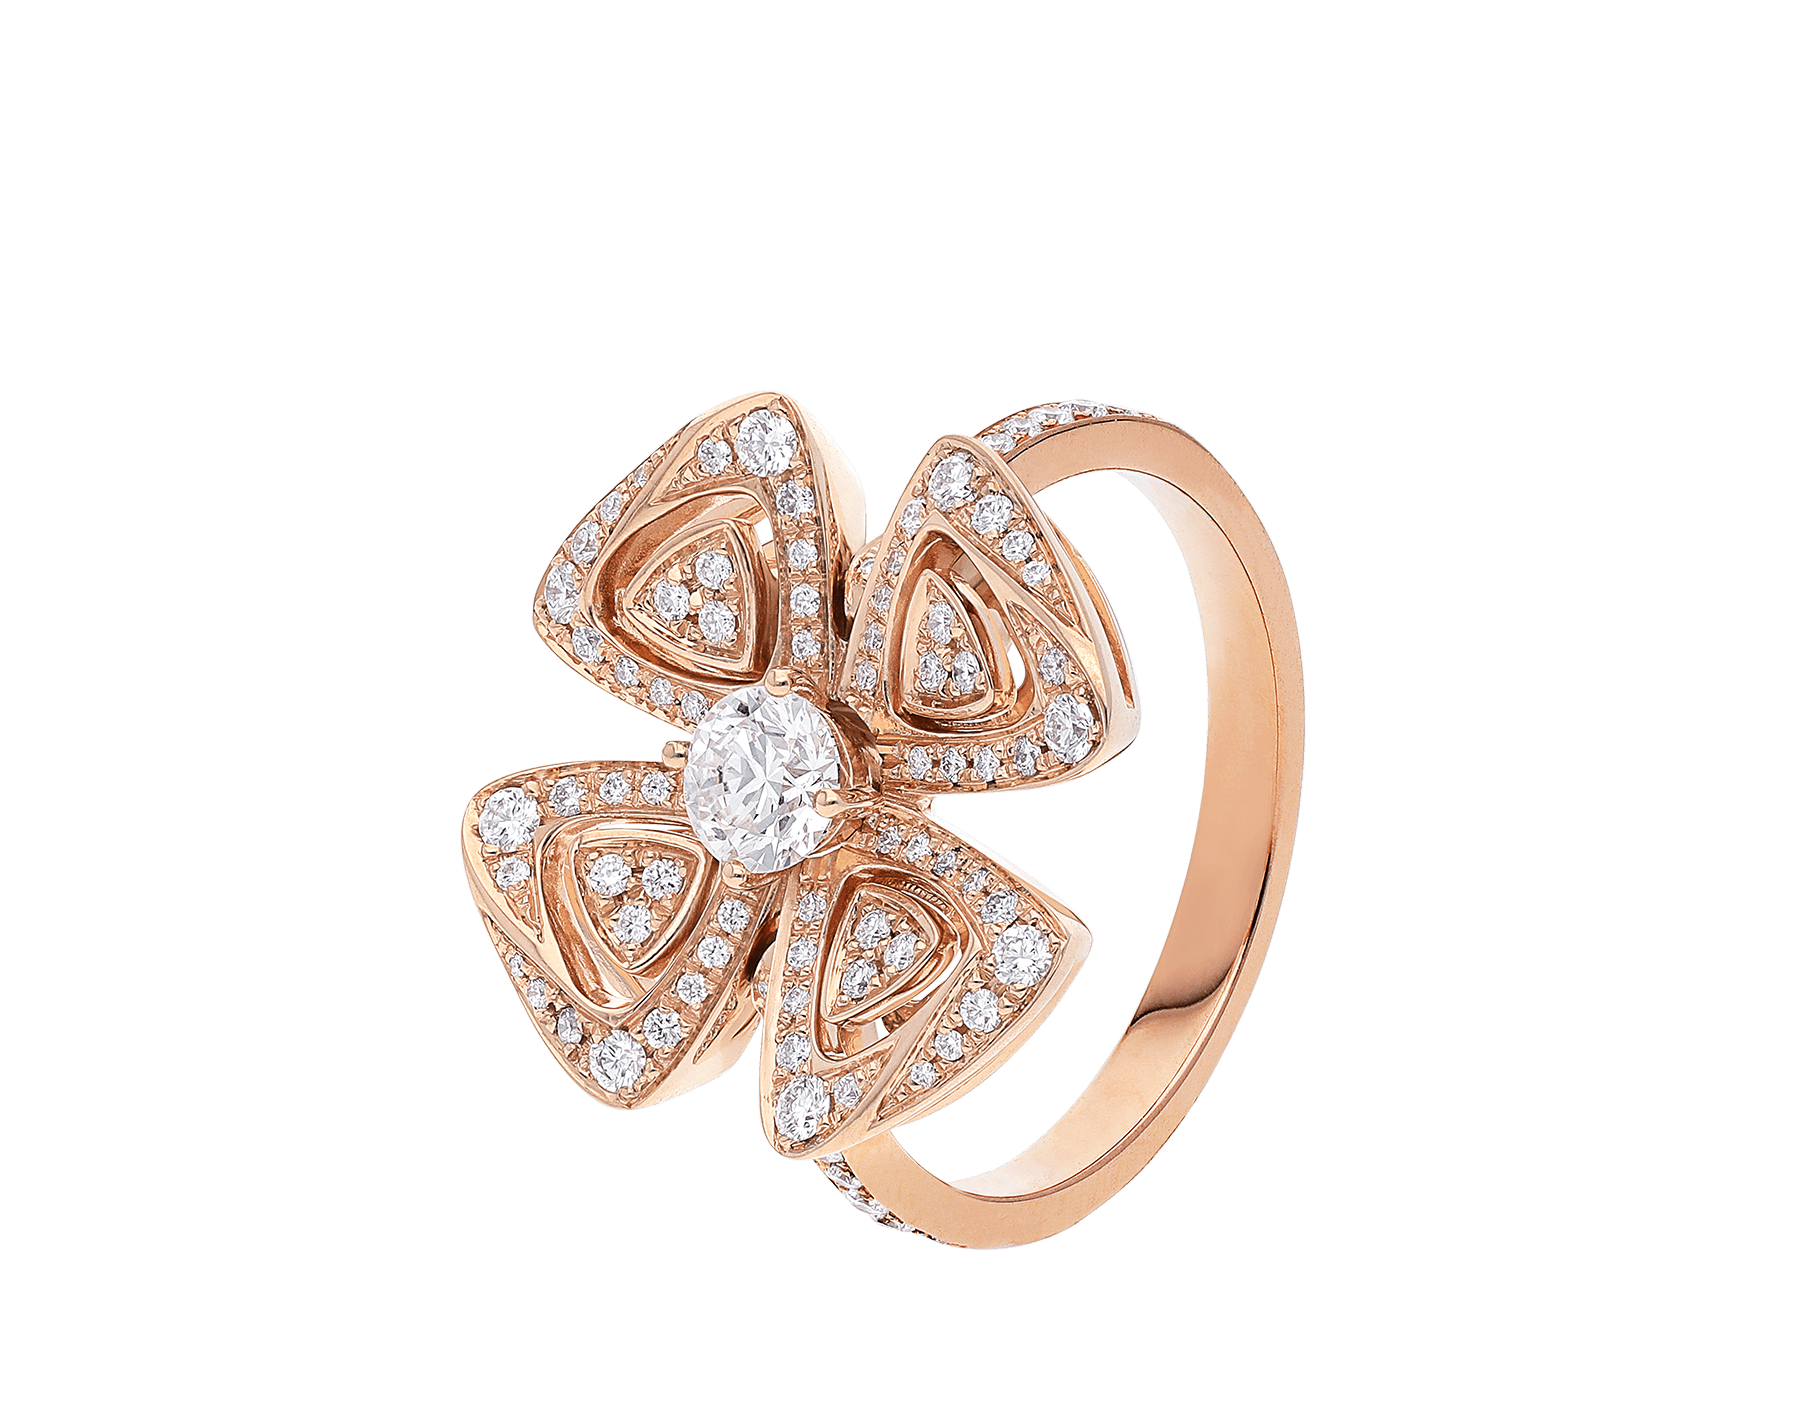 Fiorever 18 kt rose gold ring set with a central diamond and pavé diamonds. AN858504 image 1